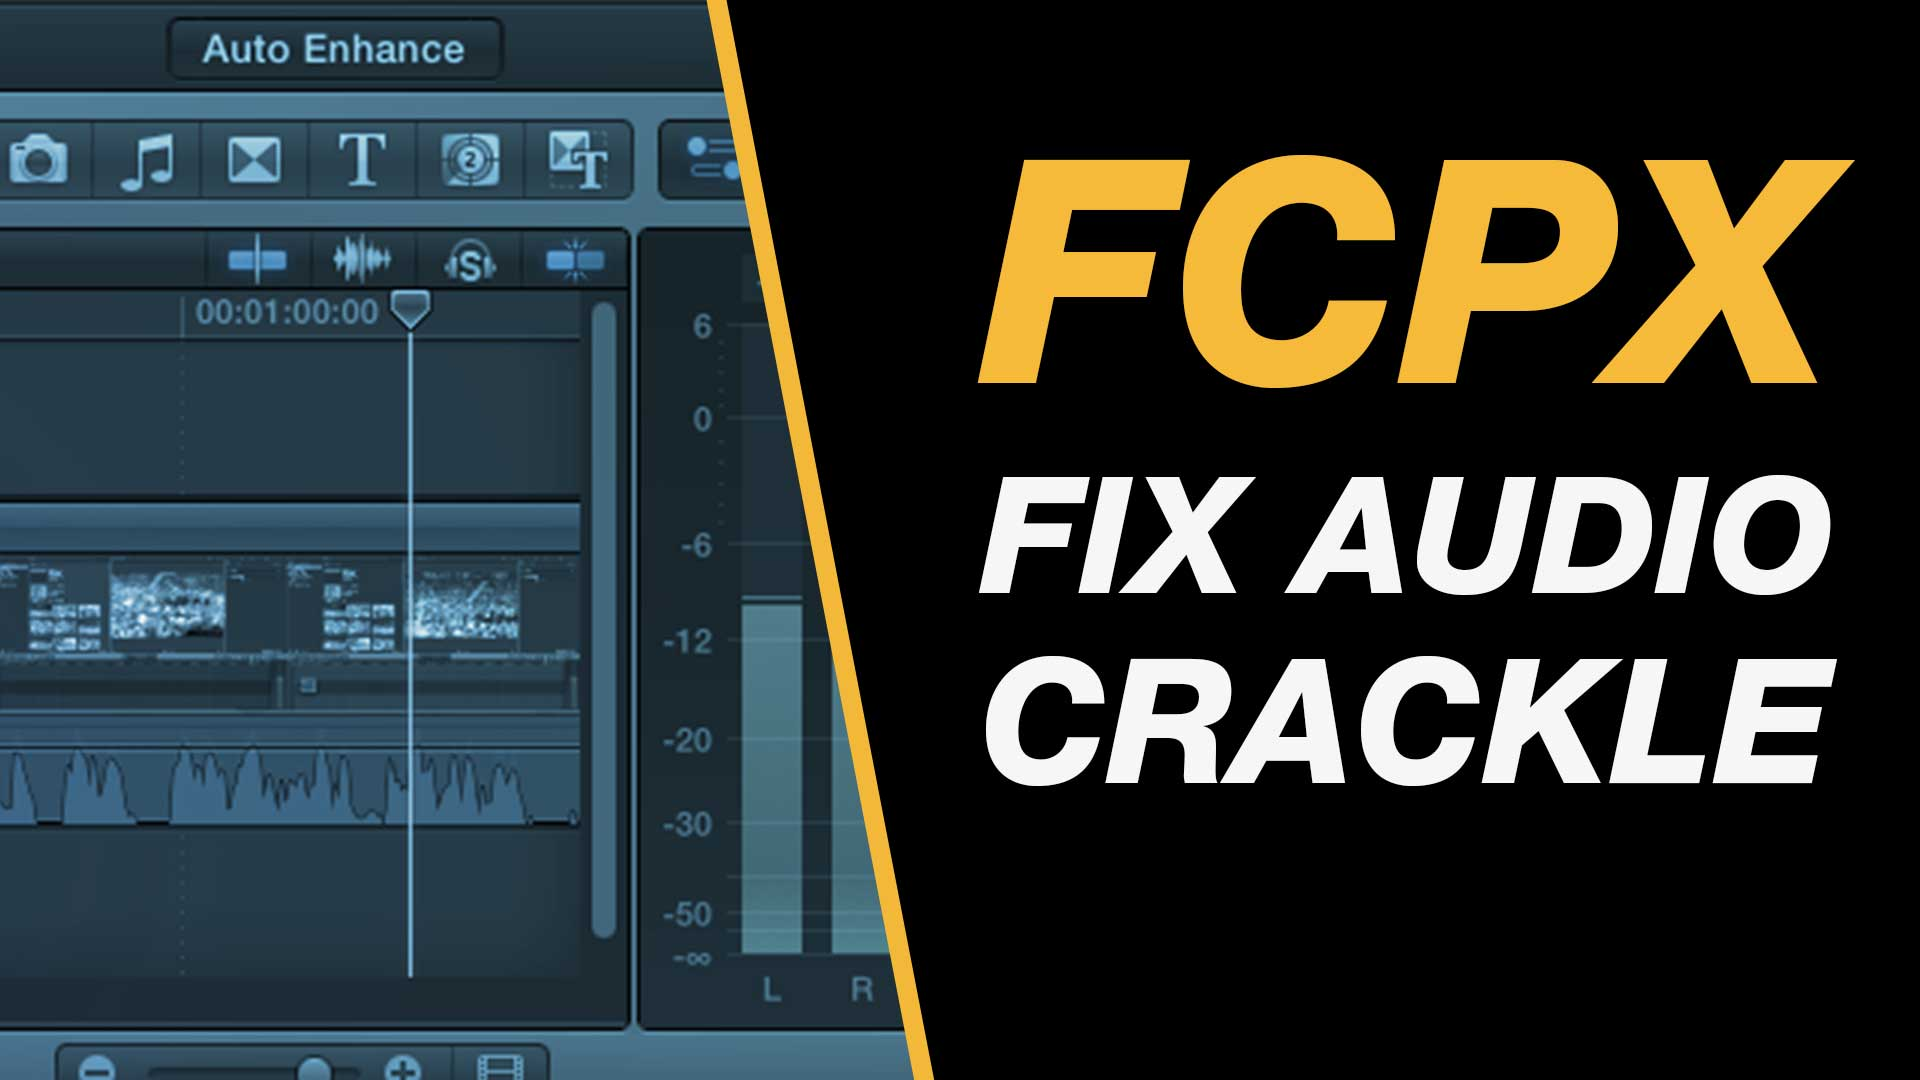 A fix for audio crackle when editing in Final Cut Pro X via